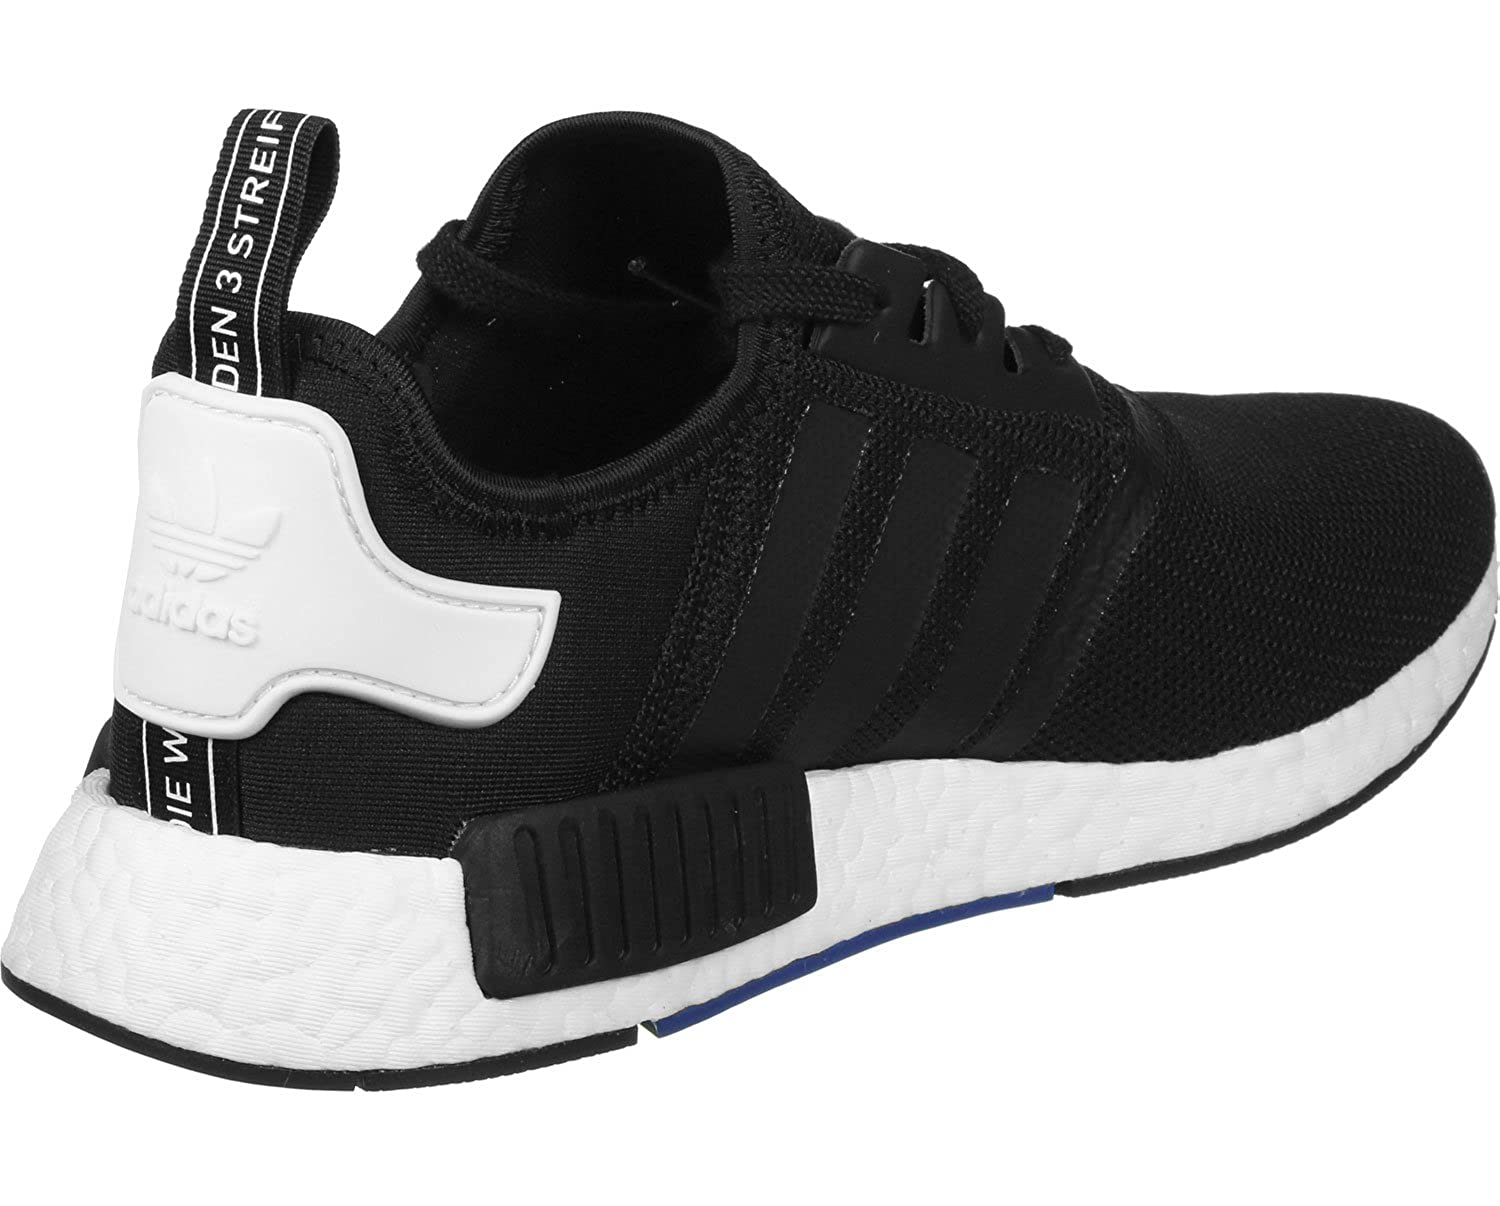 75ffb68a66e69 adidas Originals Men s NMD Runner Black and White Running Shoes - 12 UK   Buy Online at Low Prices in India - Amazon.in